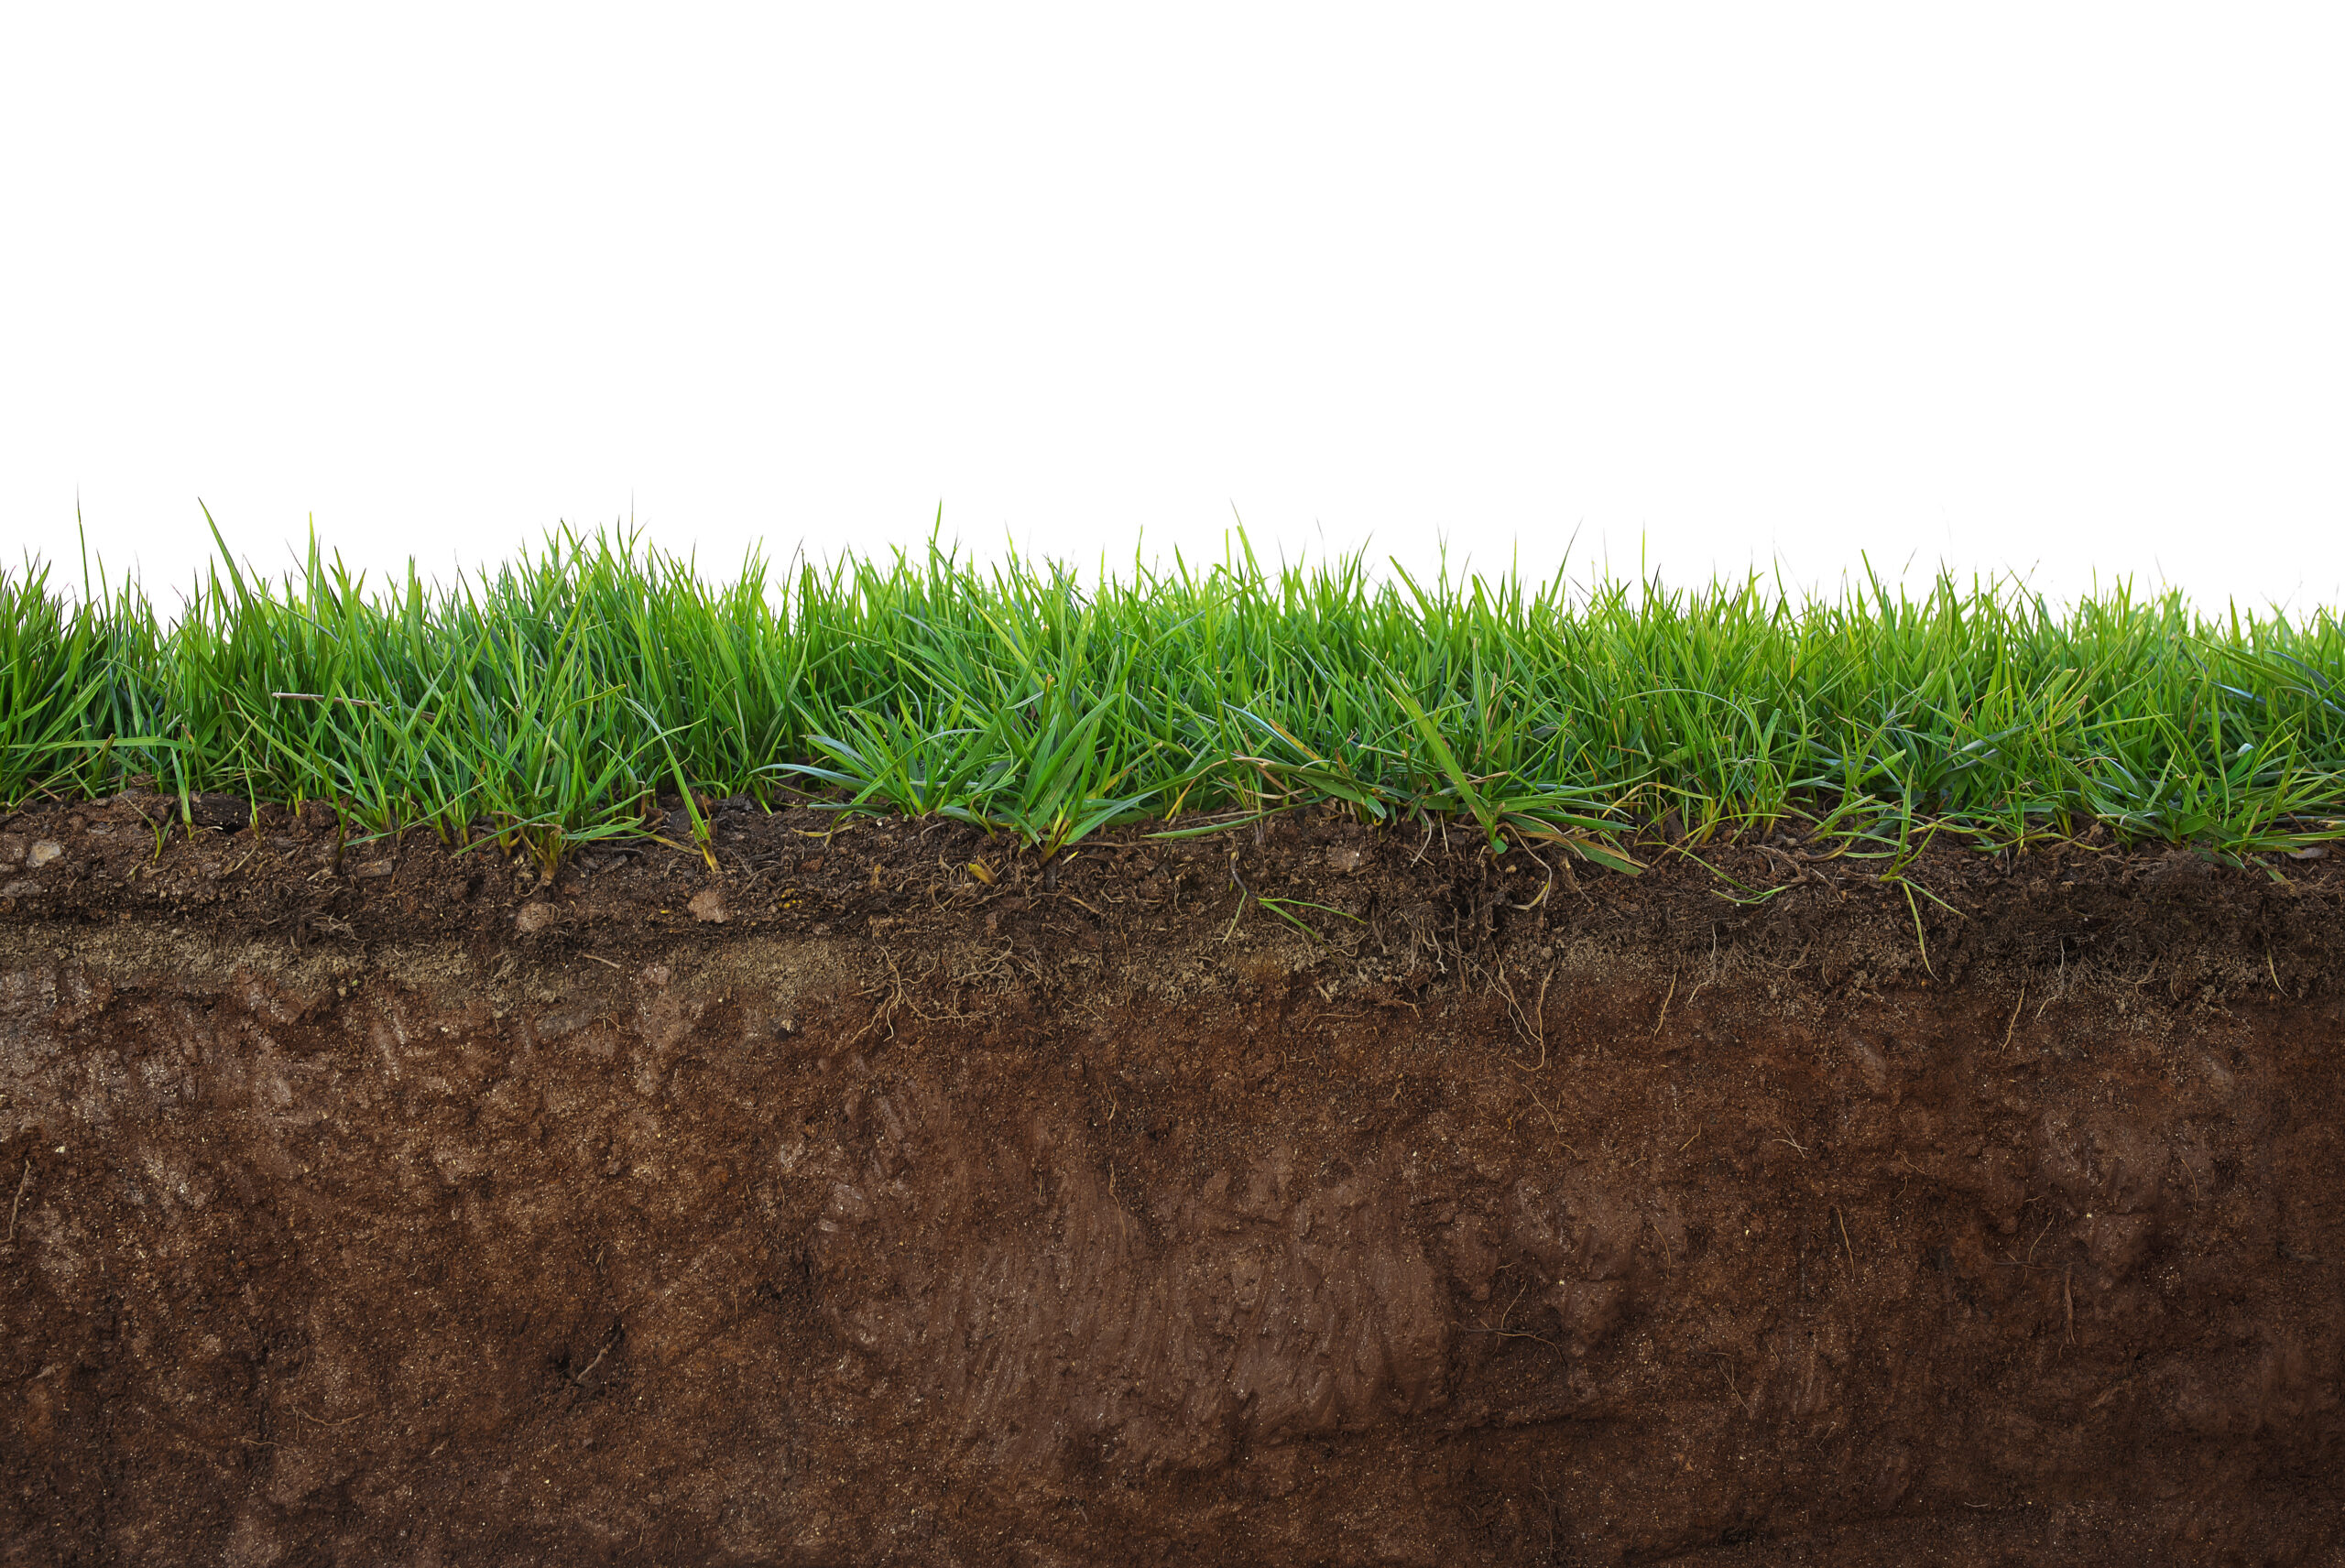 The importance of geotechnical reports and soil classification for footings